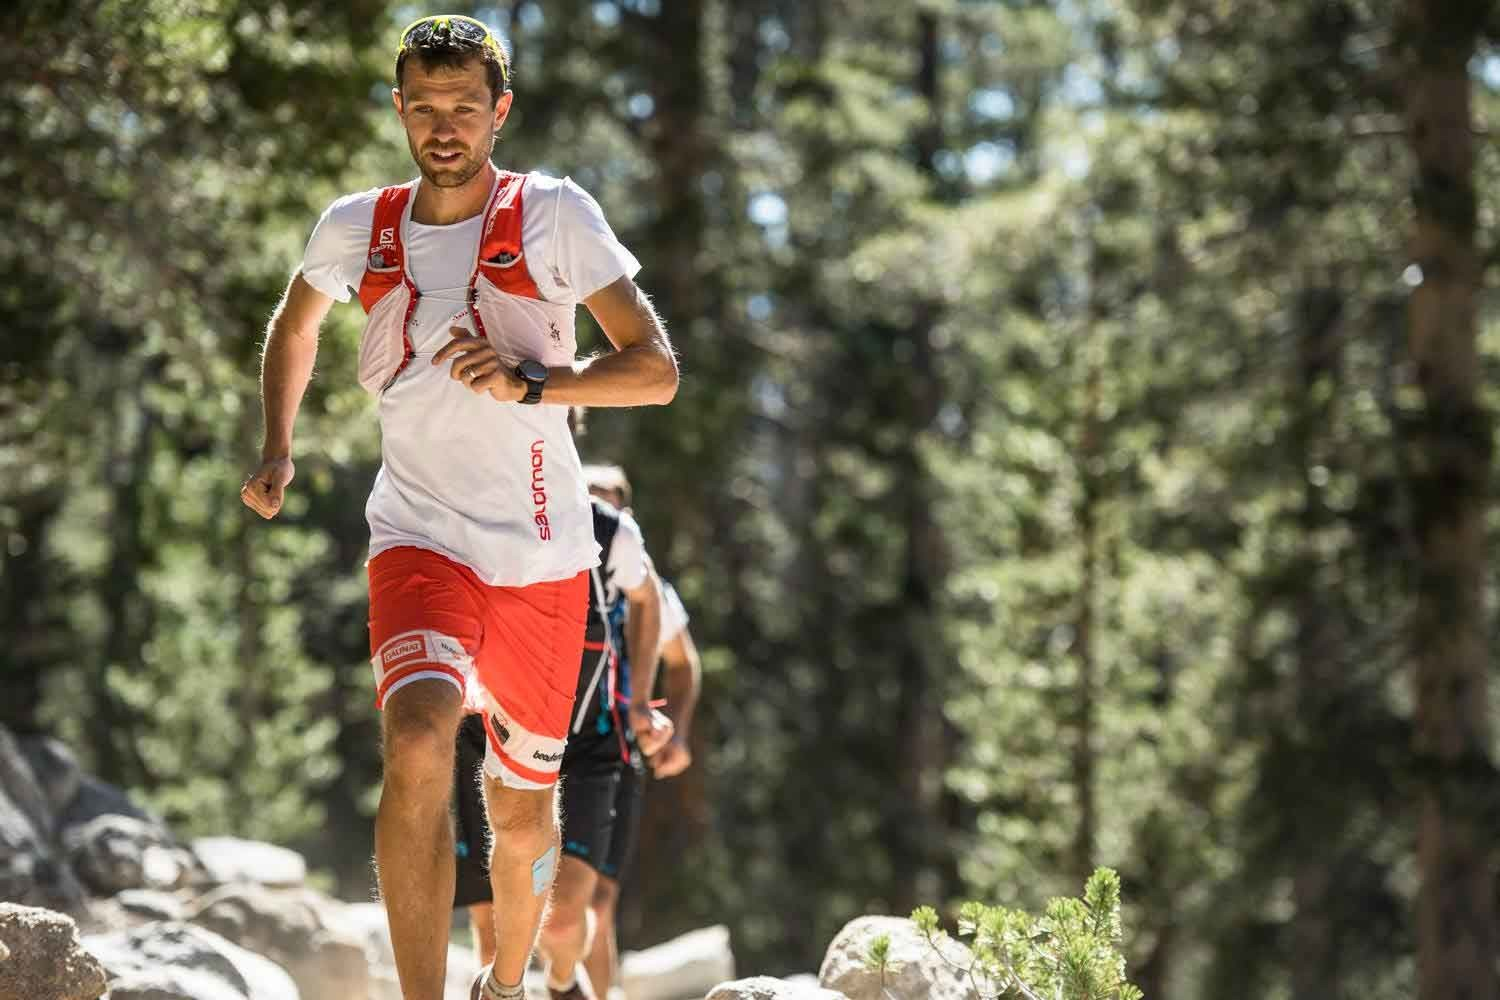 Francois d'Haene, is a favorite at Western States 100 Mile Endurance Run